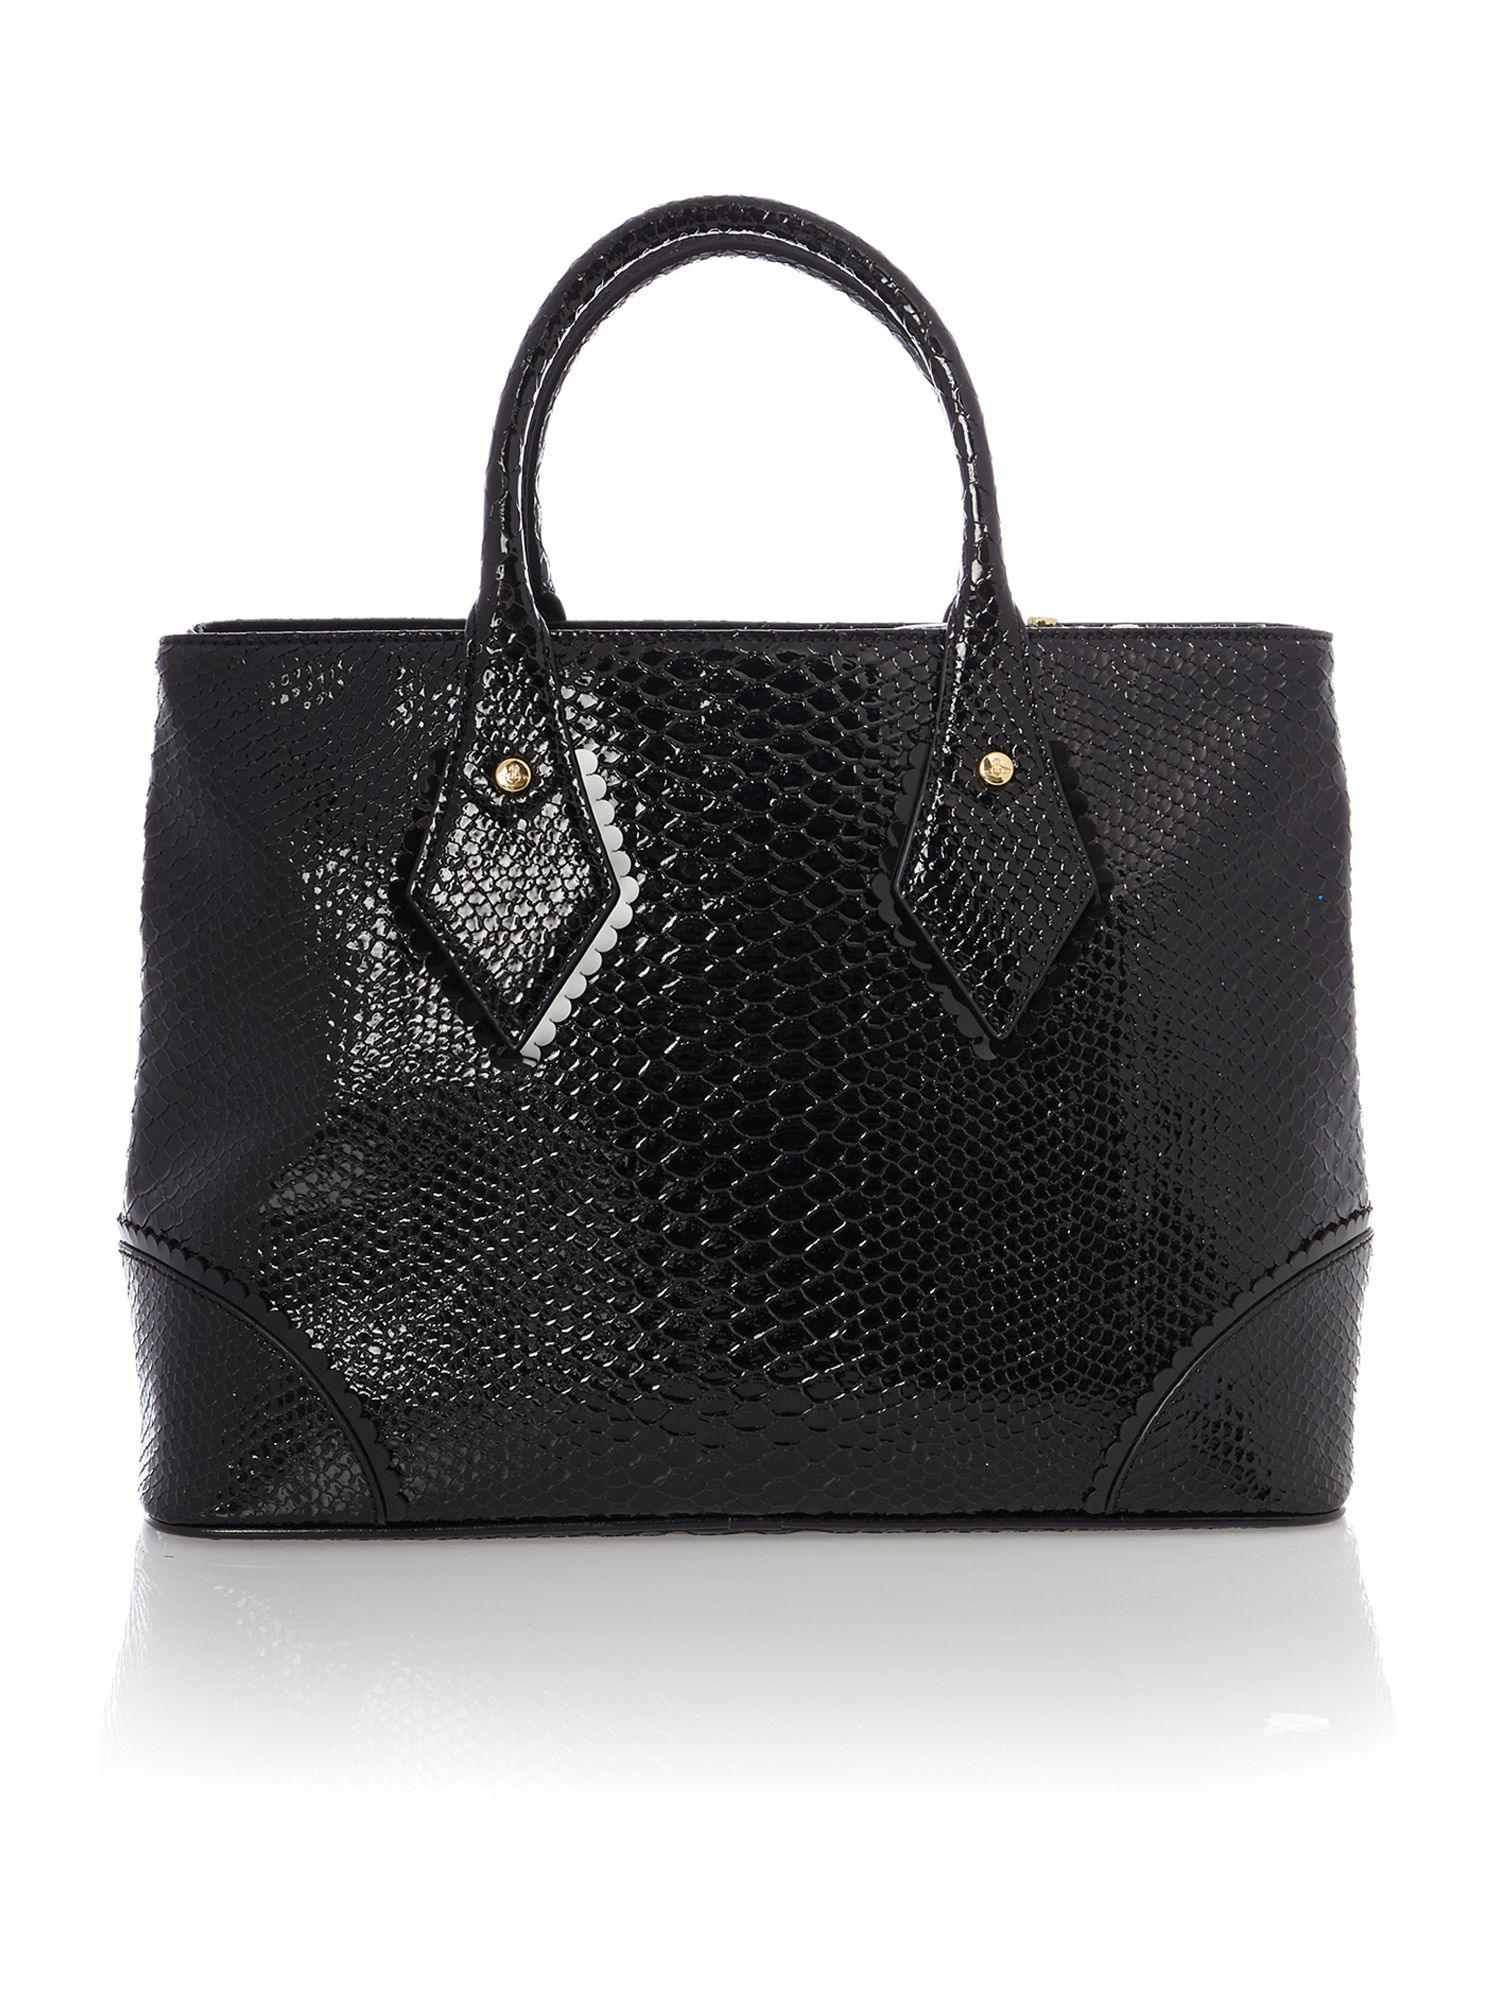 Frilly Snake black tote bag